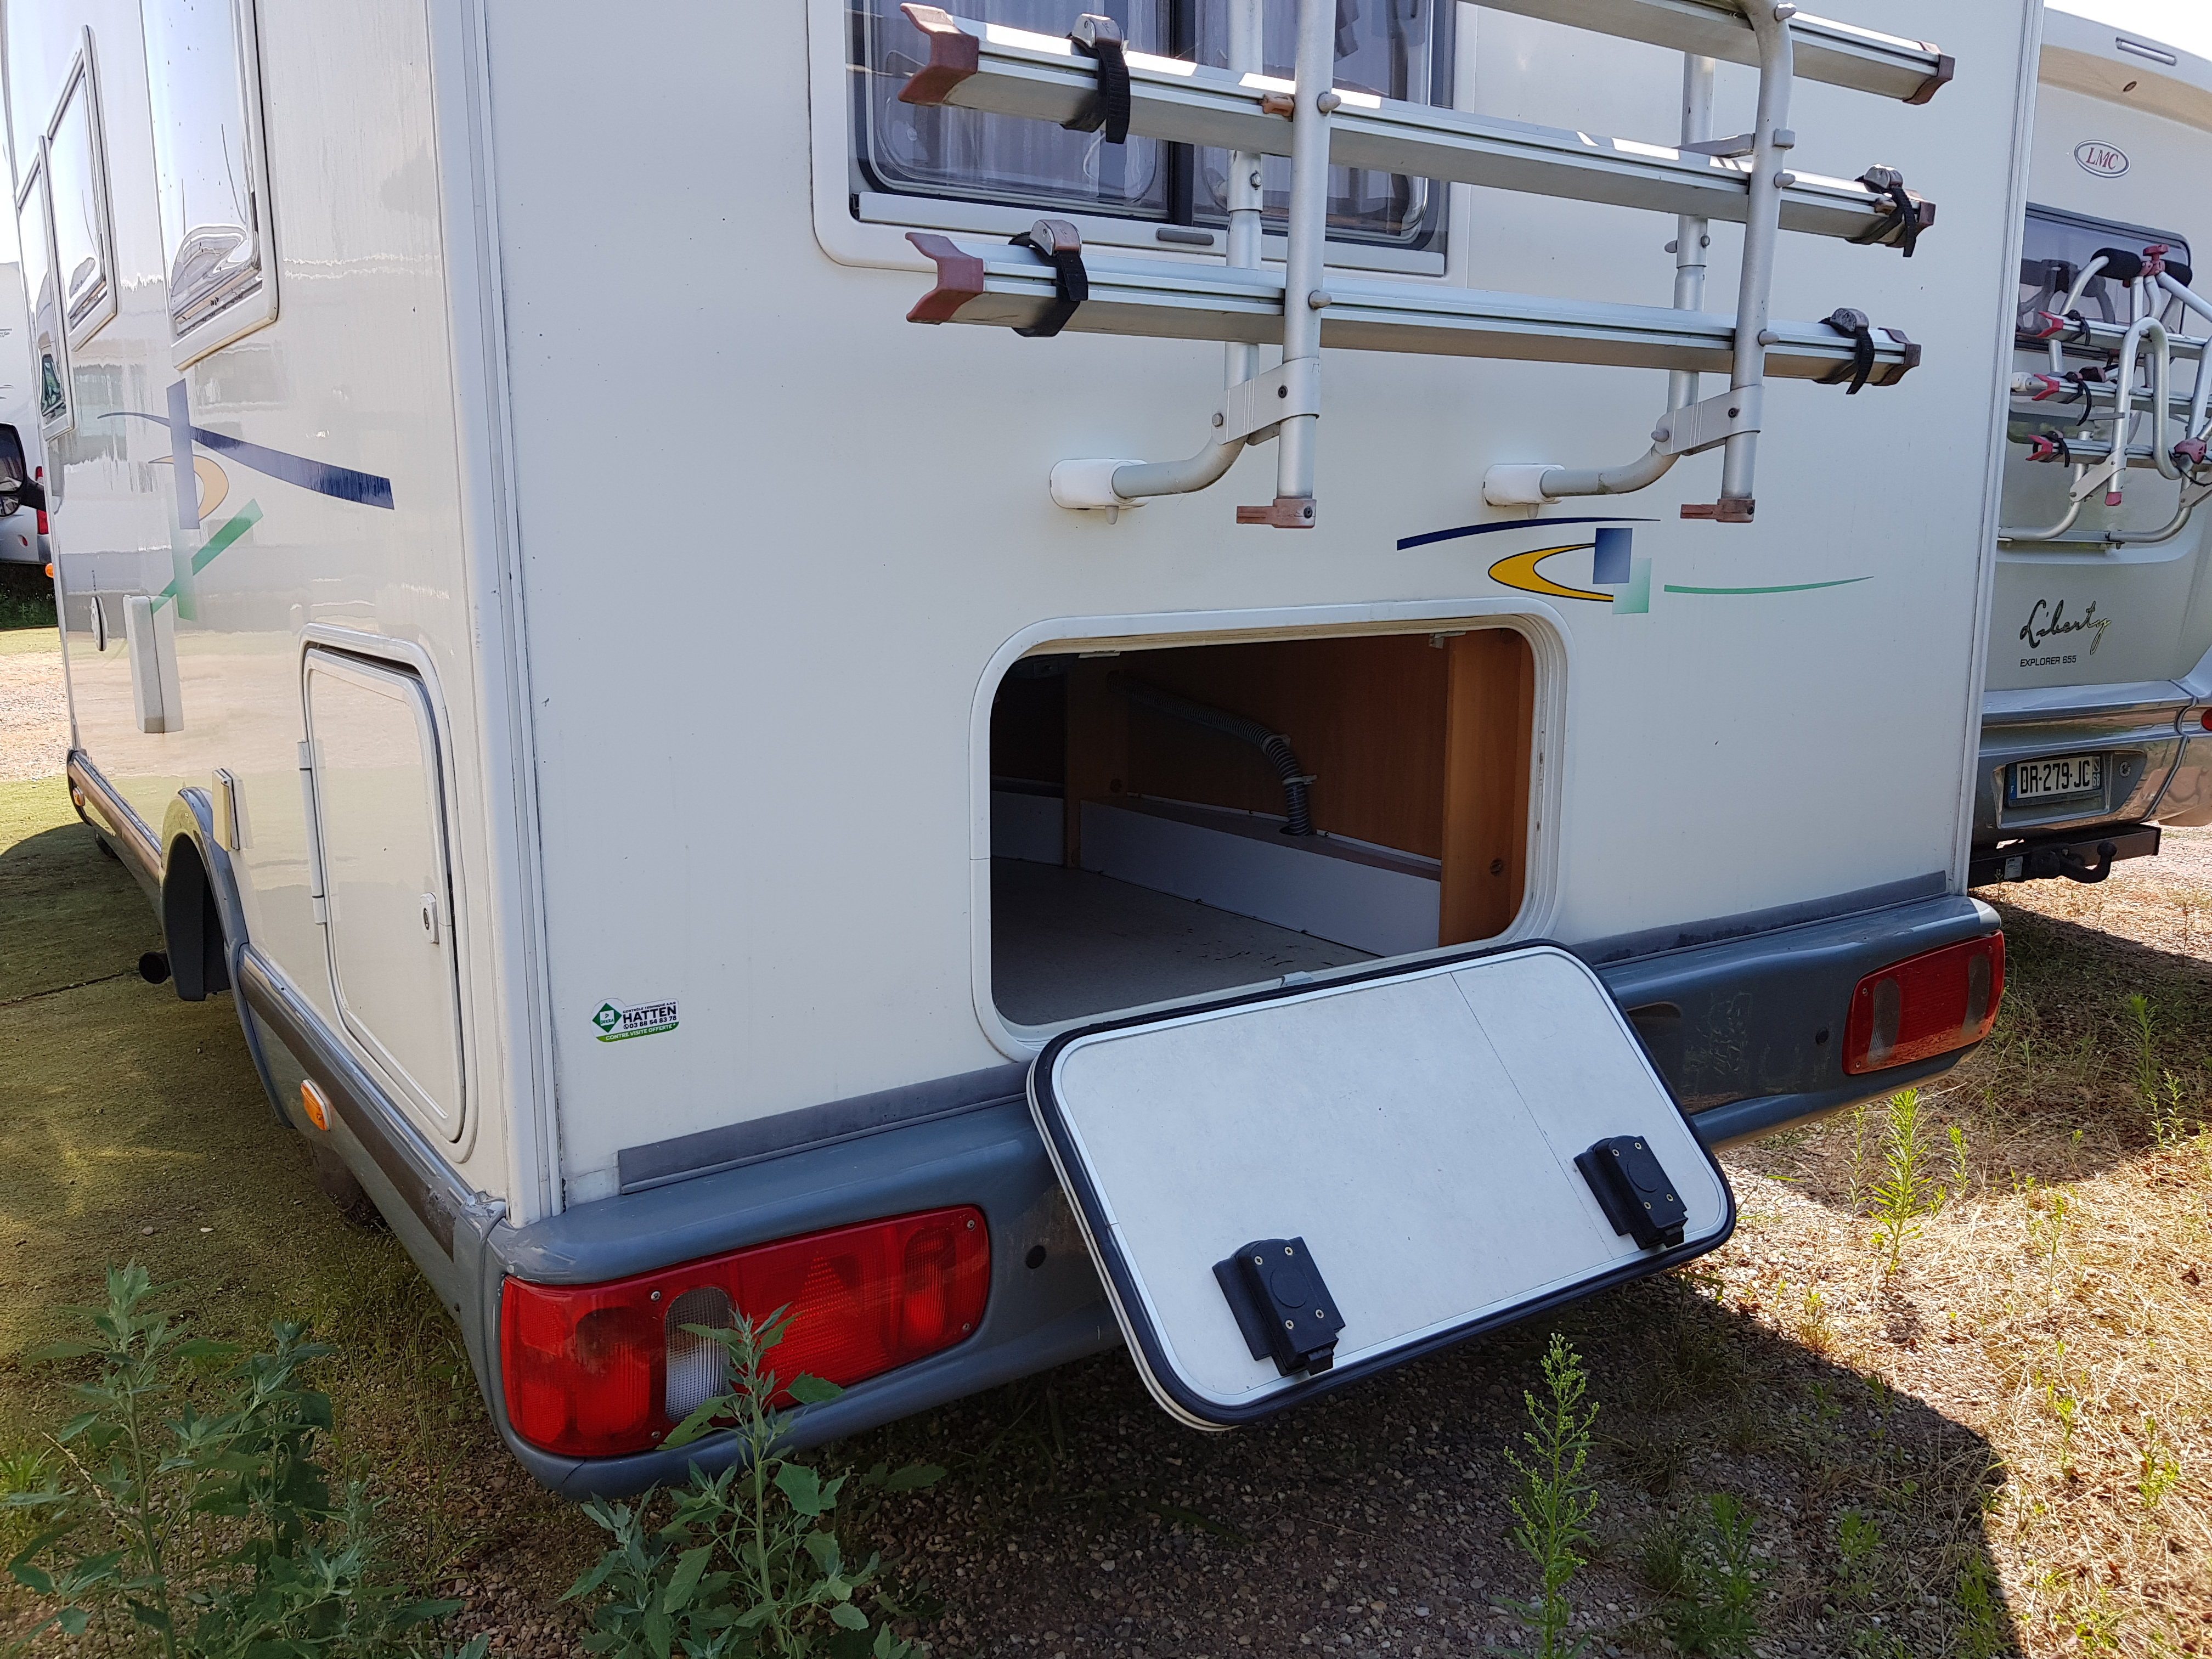 Chausson Welcom 74 - 12